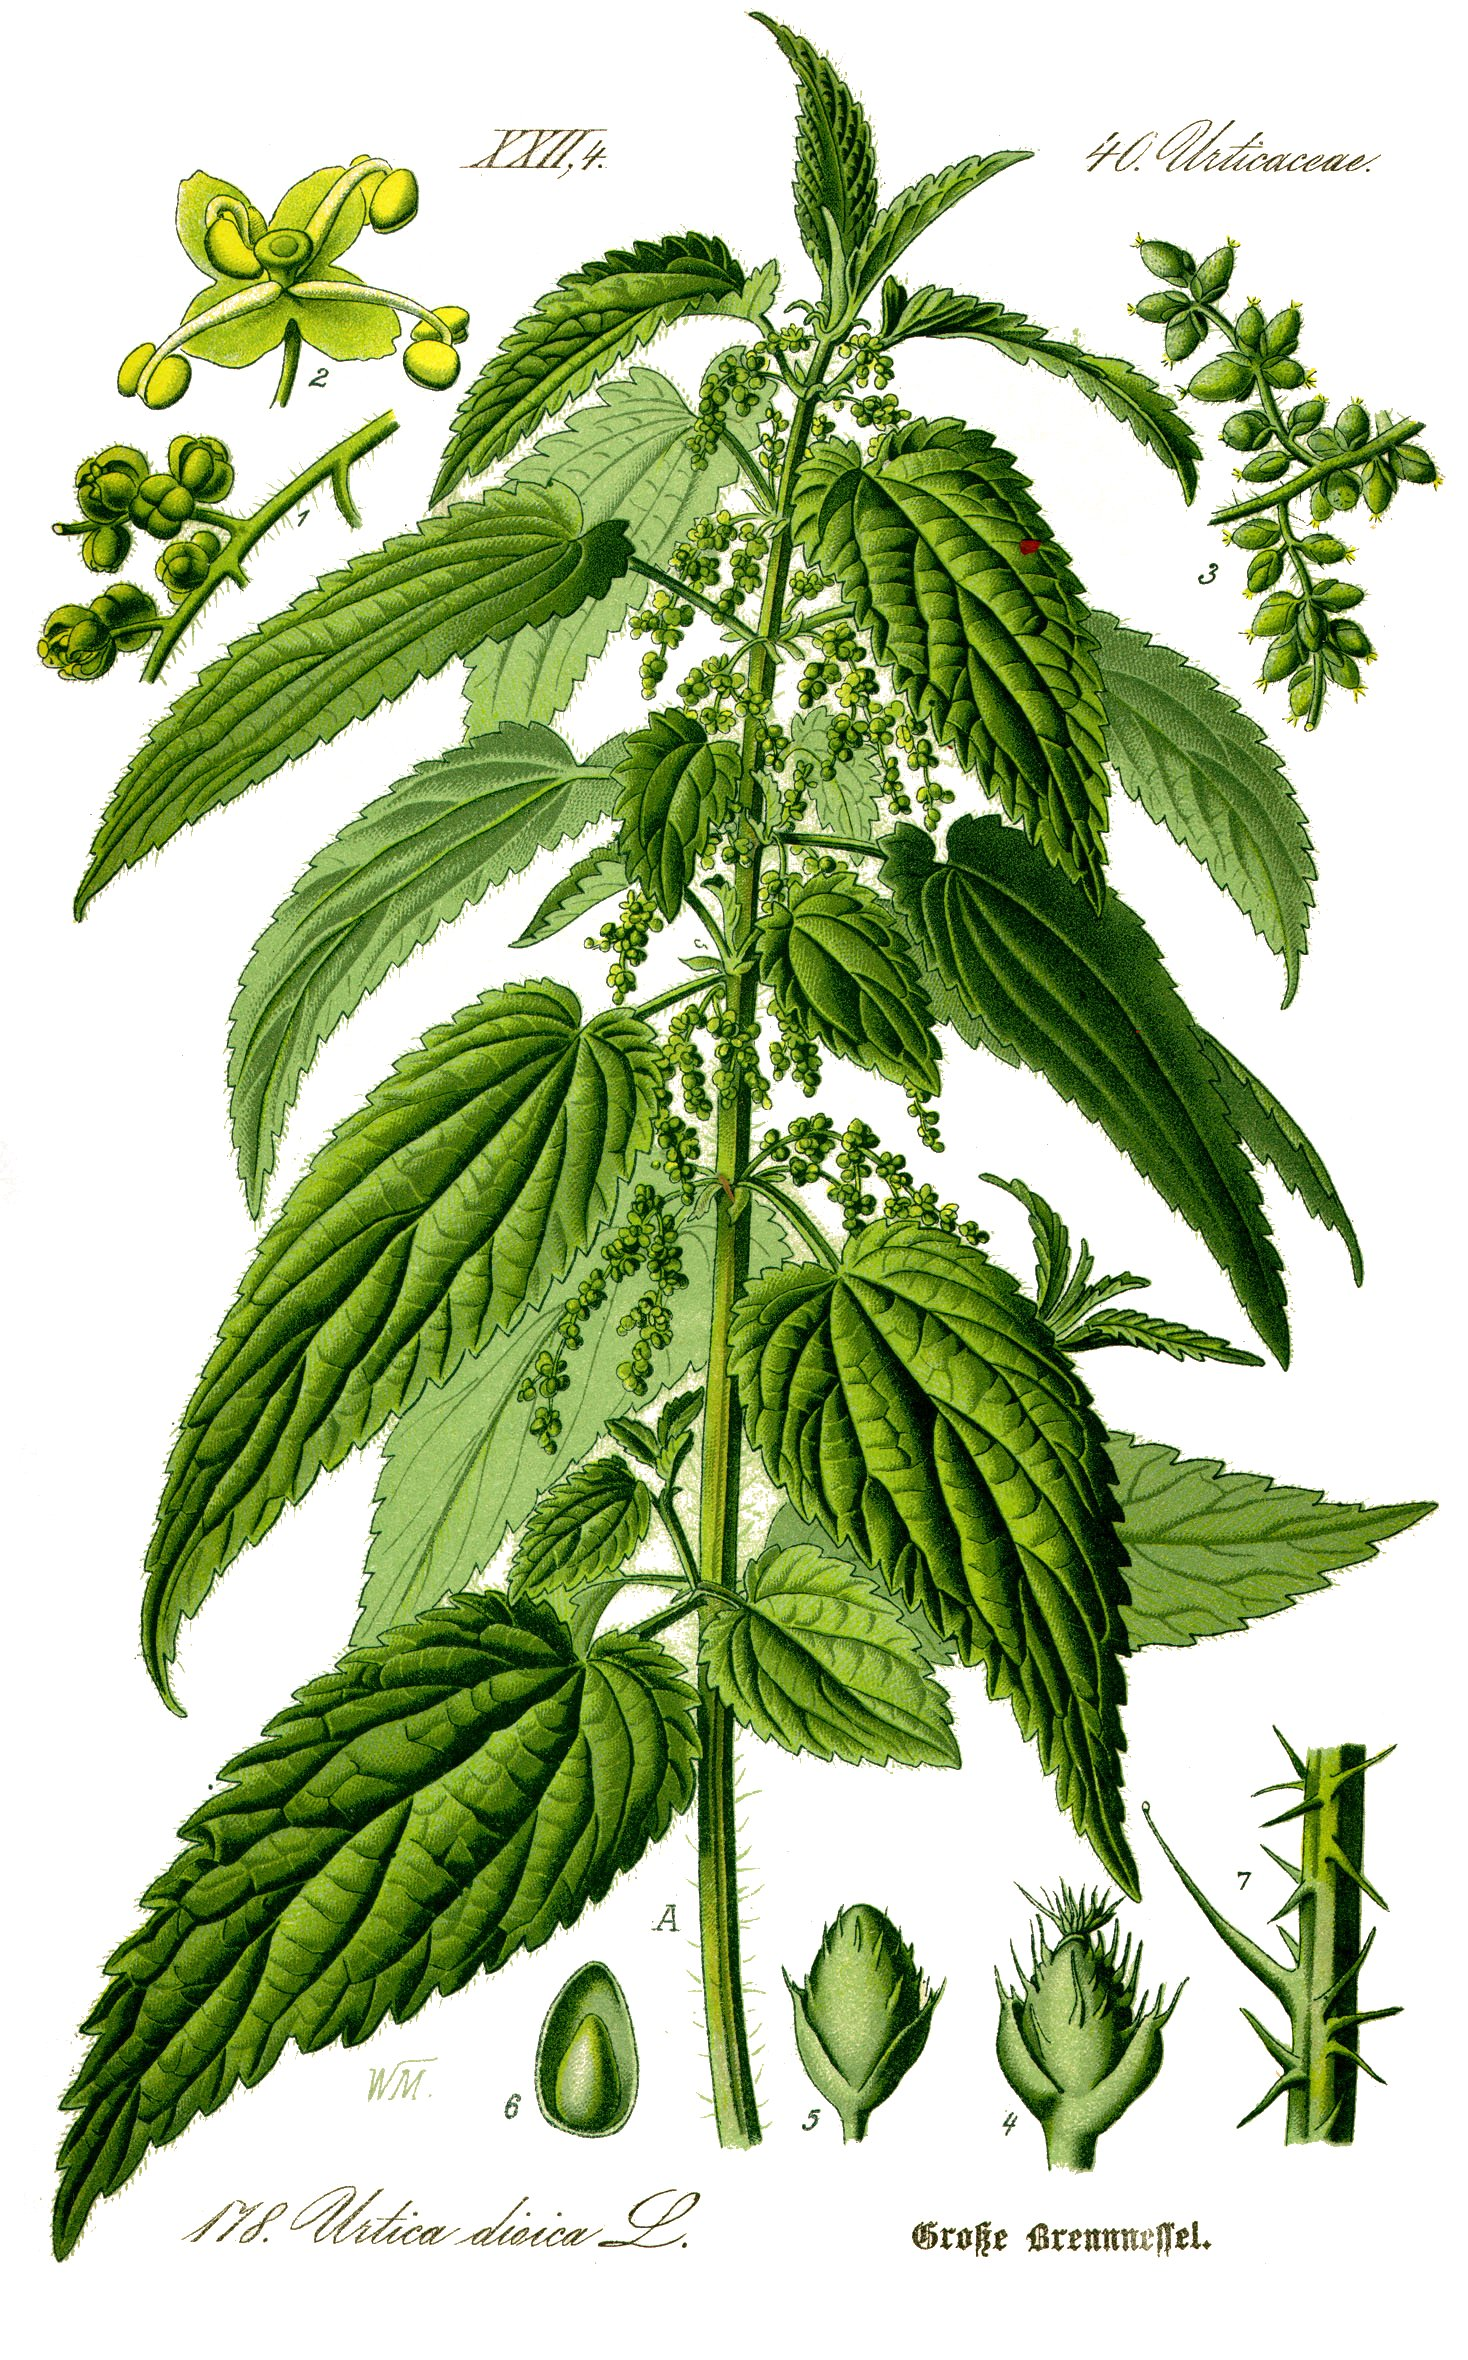 http://upload.wikimedia.org/wikipedia/commons/d/dc/Illustration_Urtica_dioica0_clean.jpg